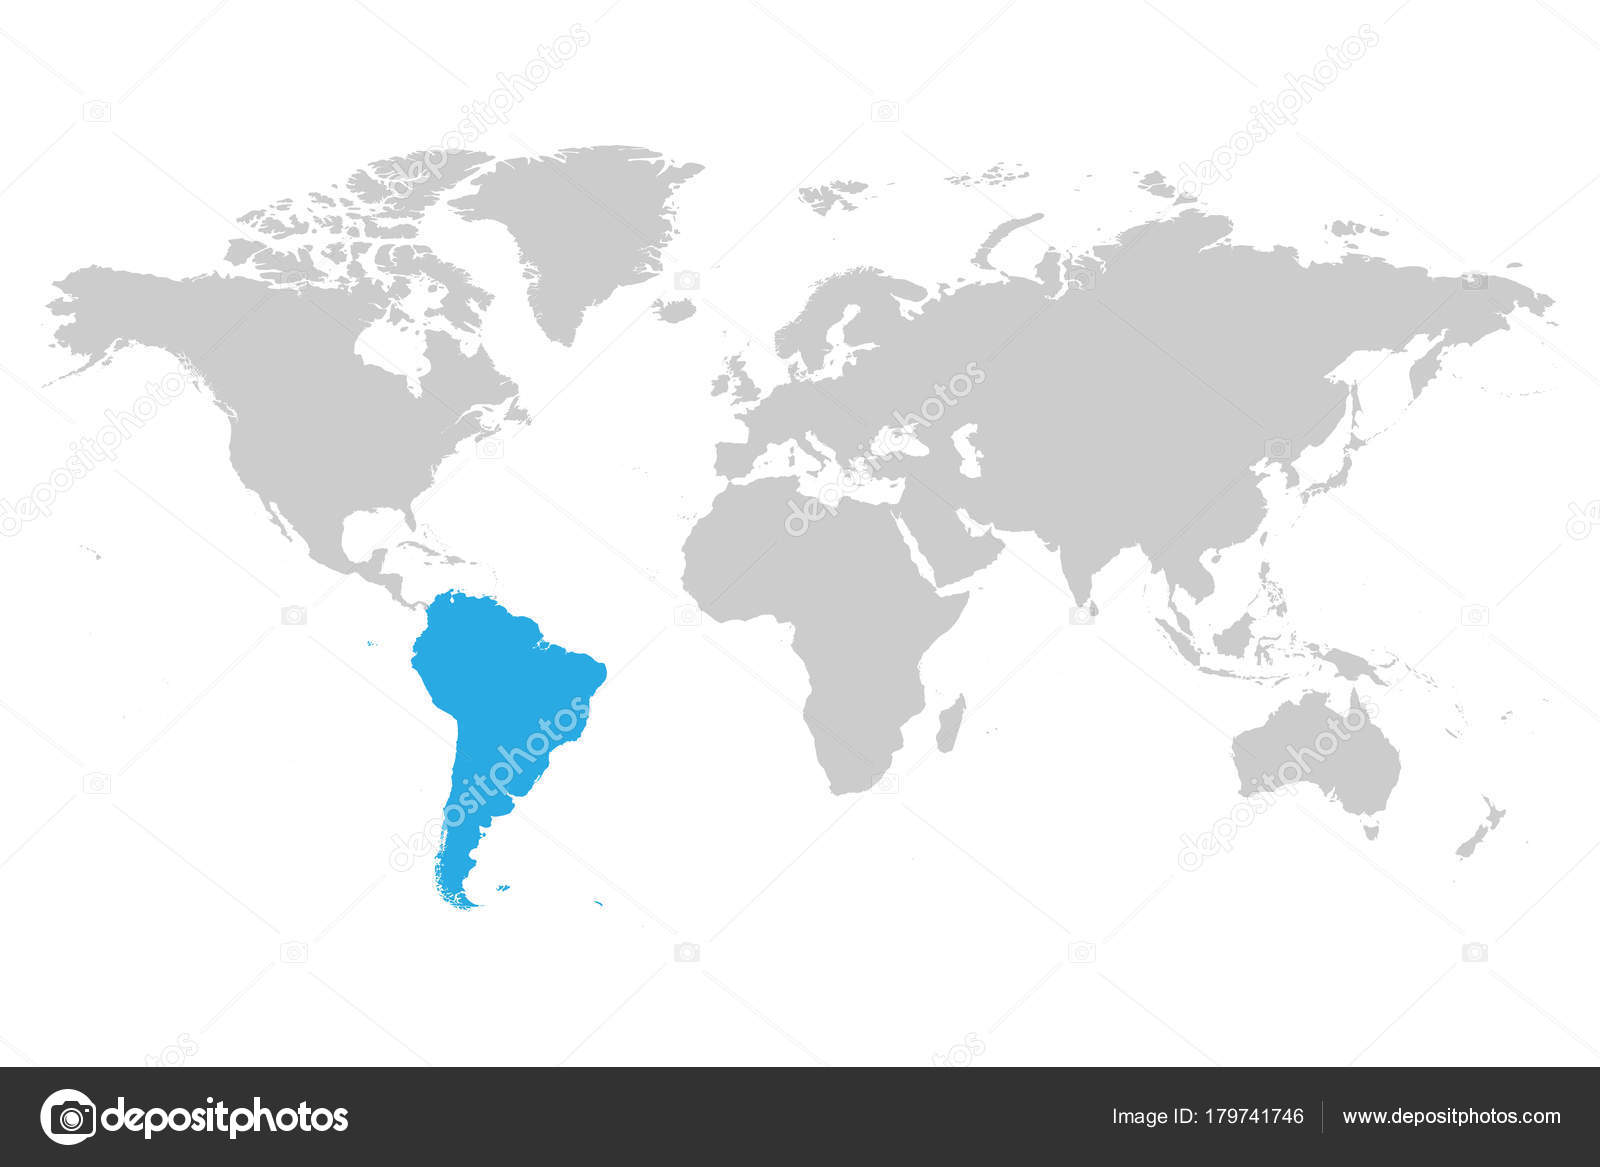 Simple World Map Flat. South America continent blue marked in grey silhouette of World map  Simple flat vector illustration